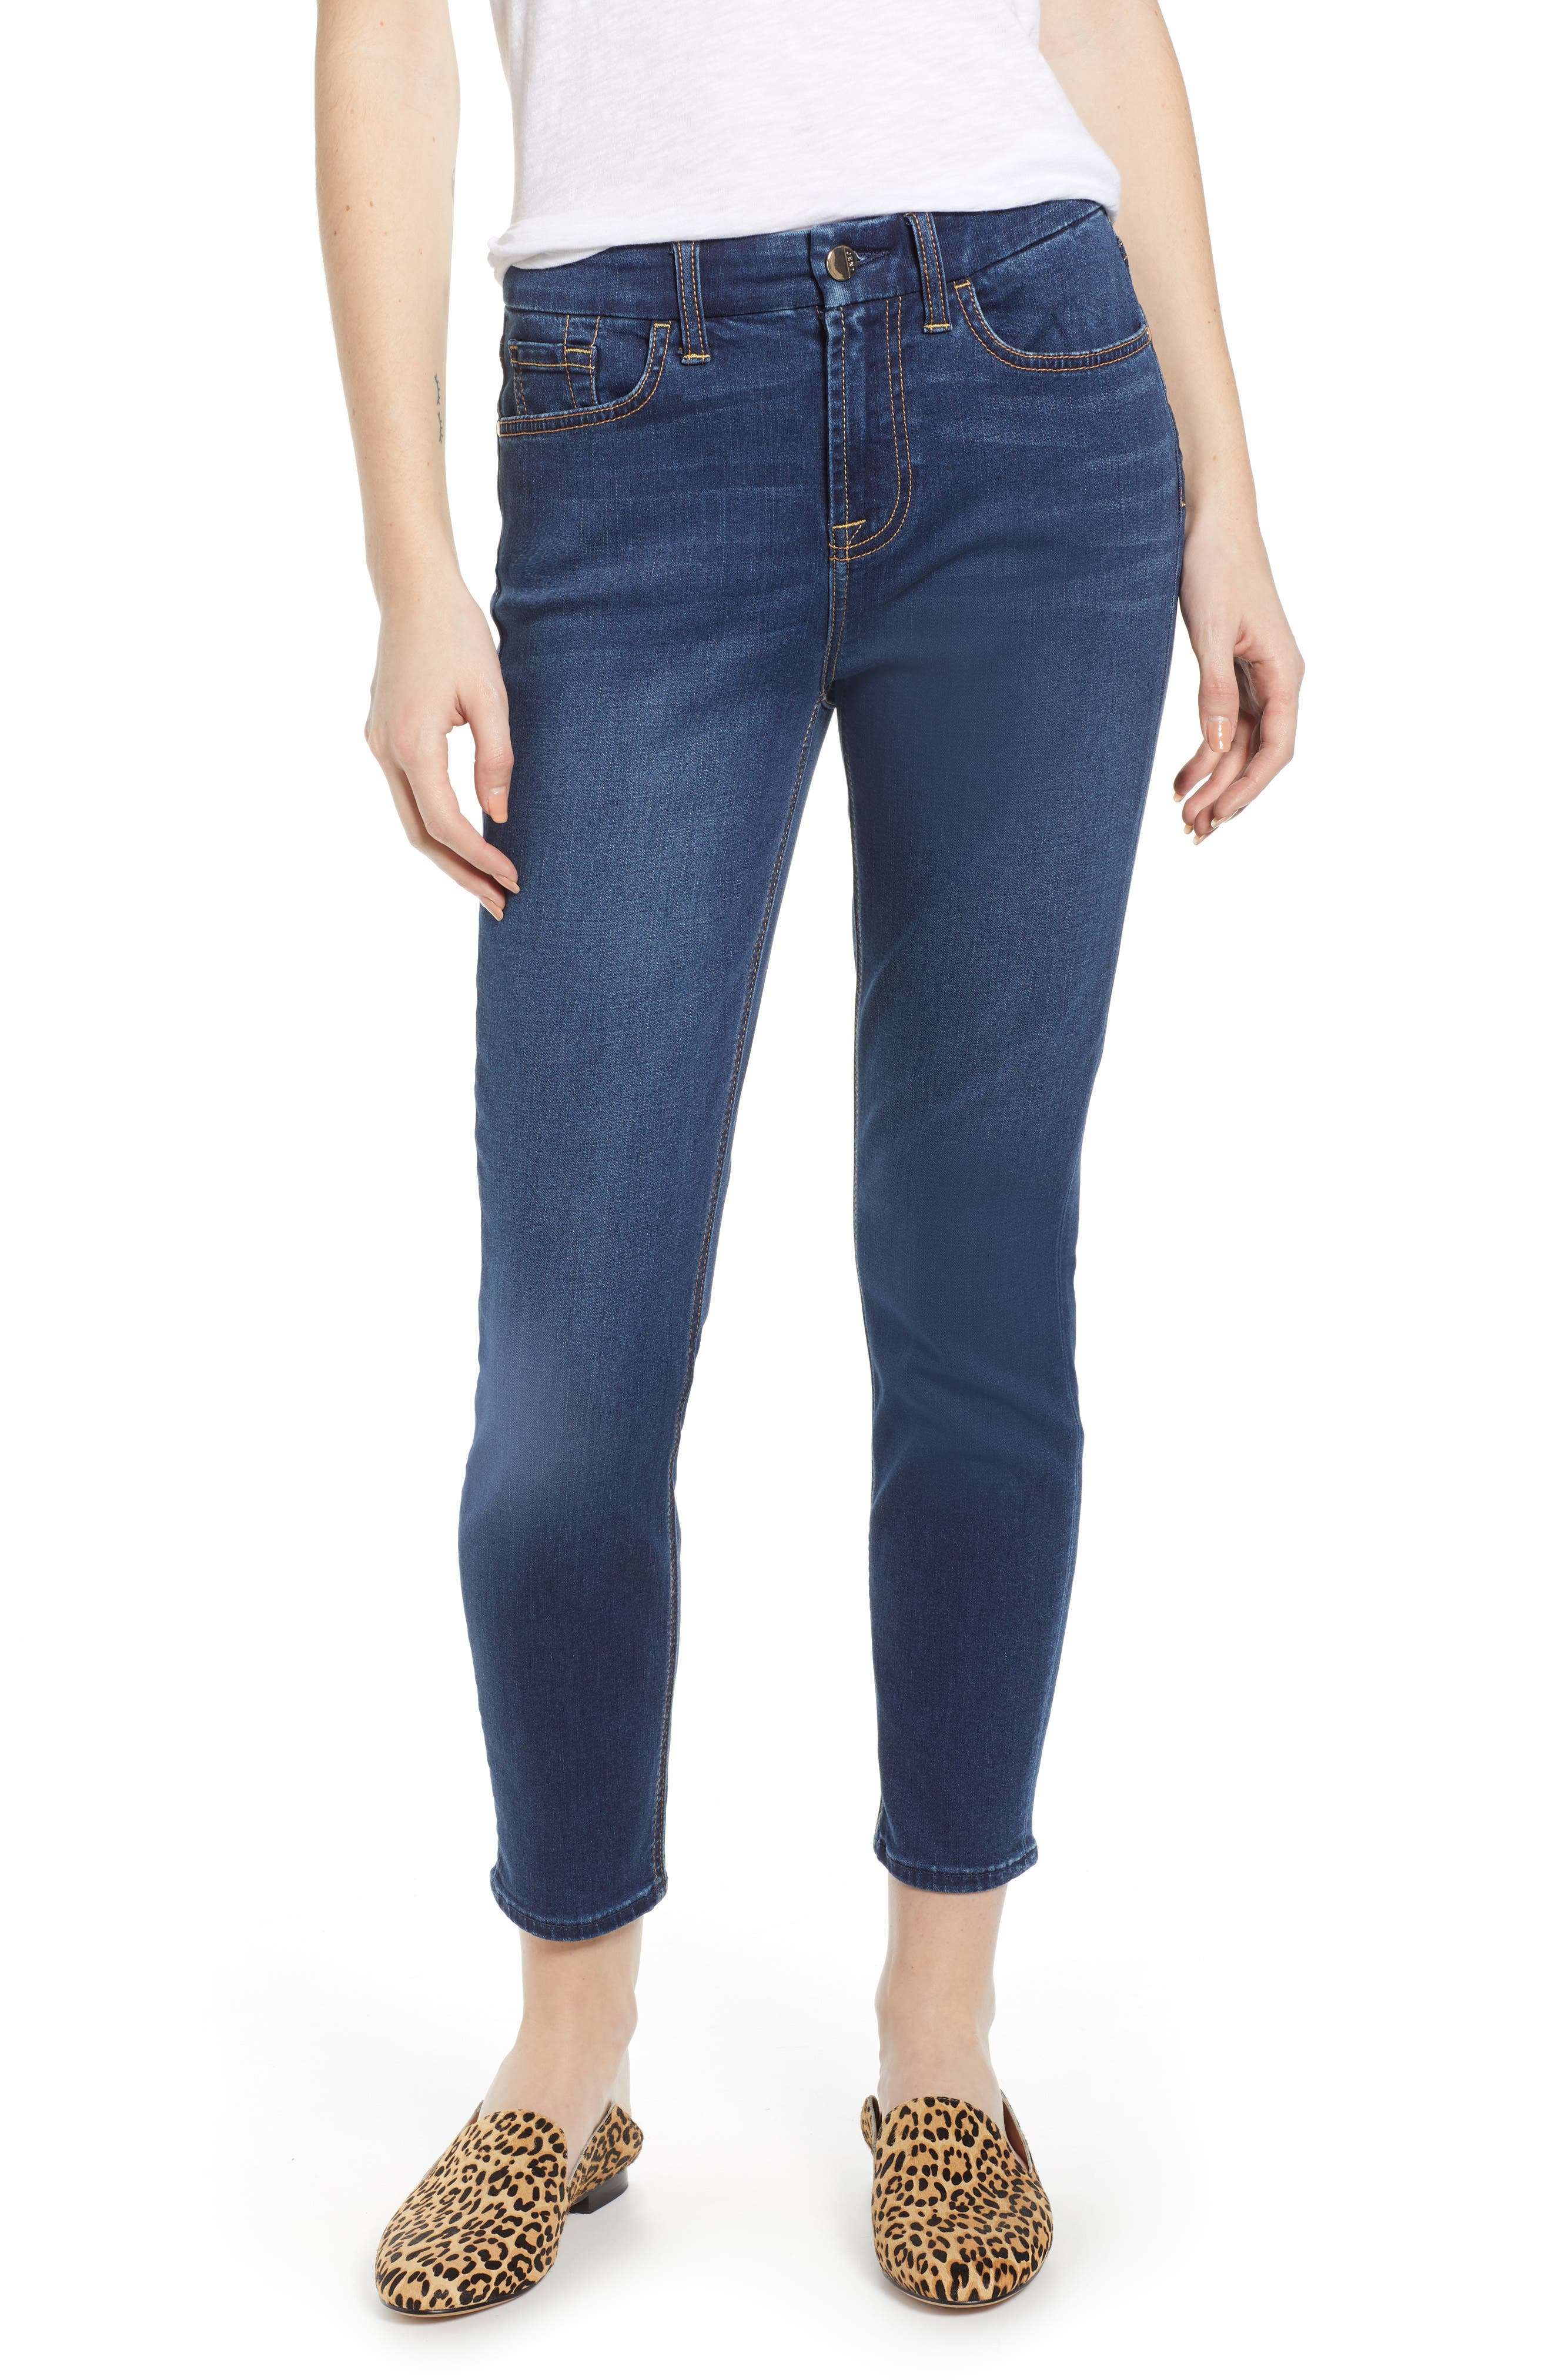 JEN7 BY 7 FOR ALL MANKIND, Ankle Skinny Jeans, Main thumbnail 1, color, 405